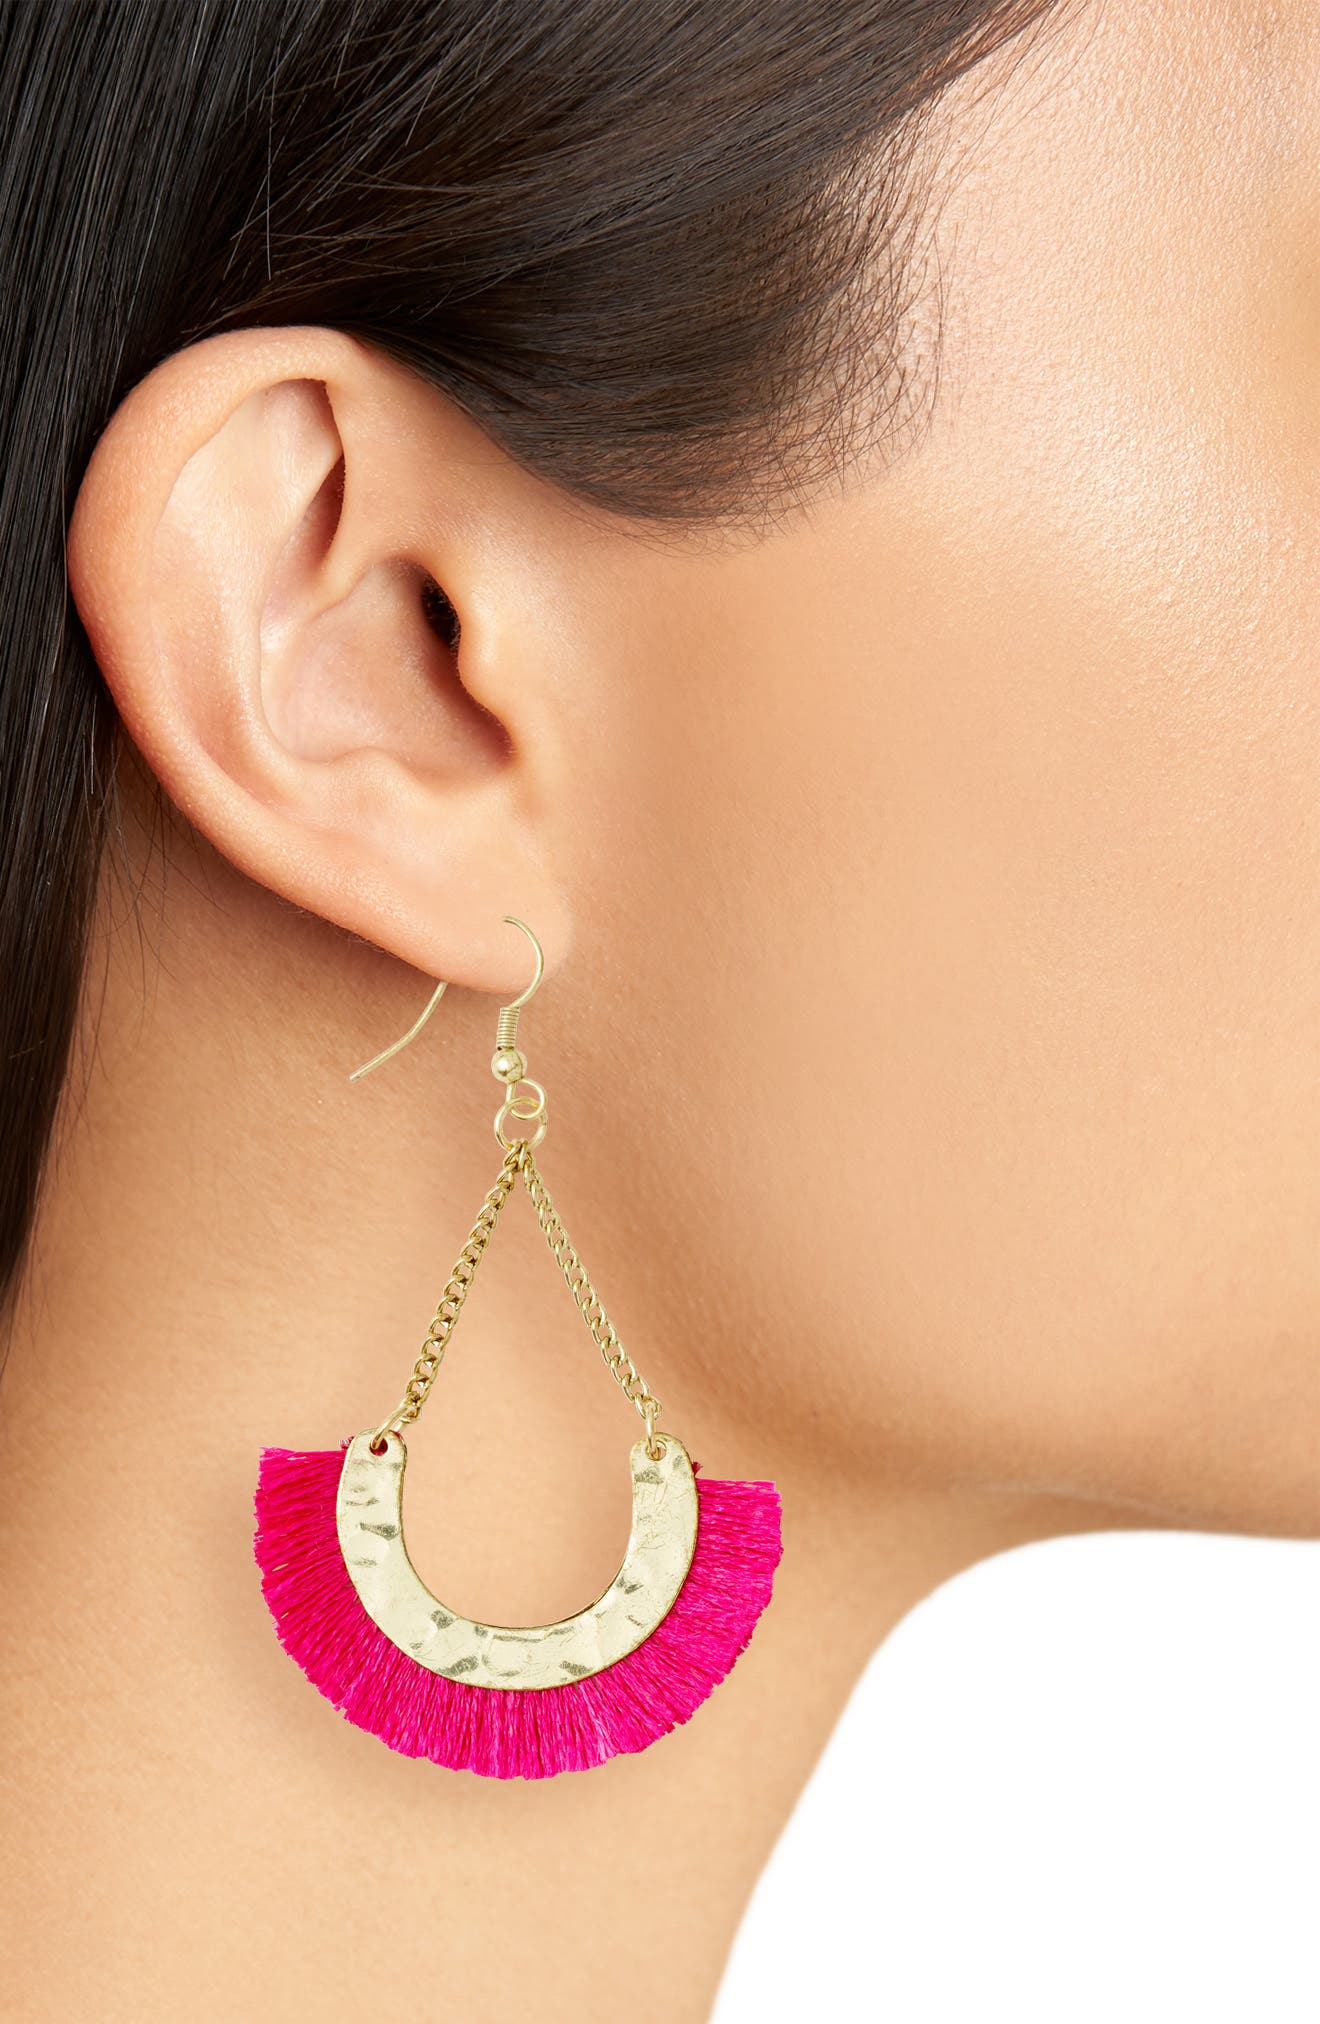 Maldives Fringed Fan Earrings,                             Alternate thumbnail 2, color,